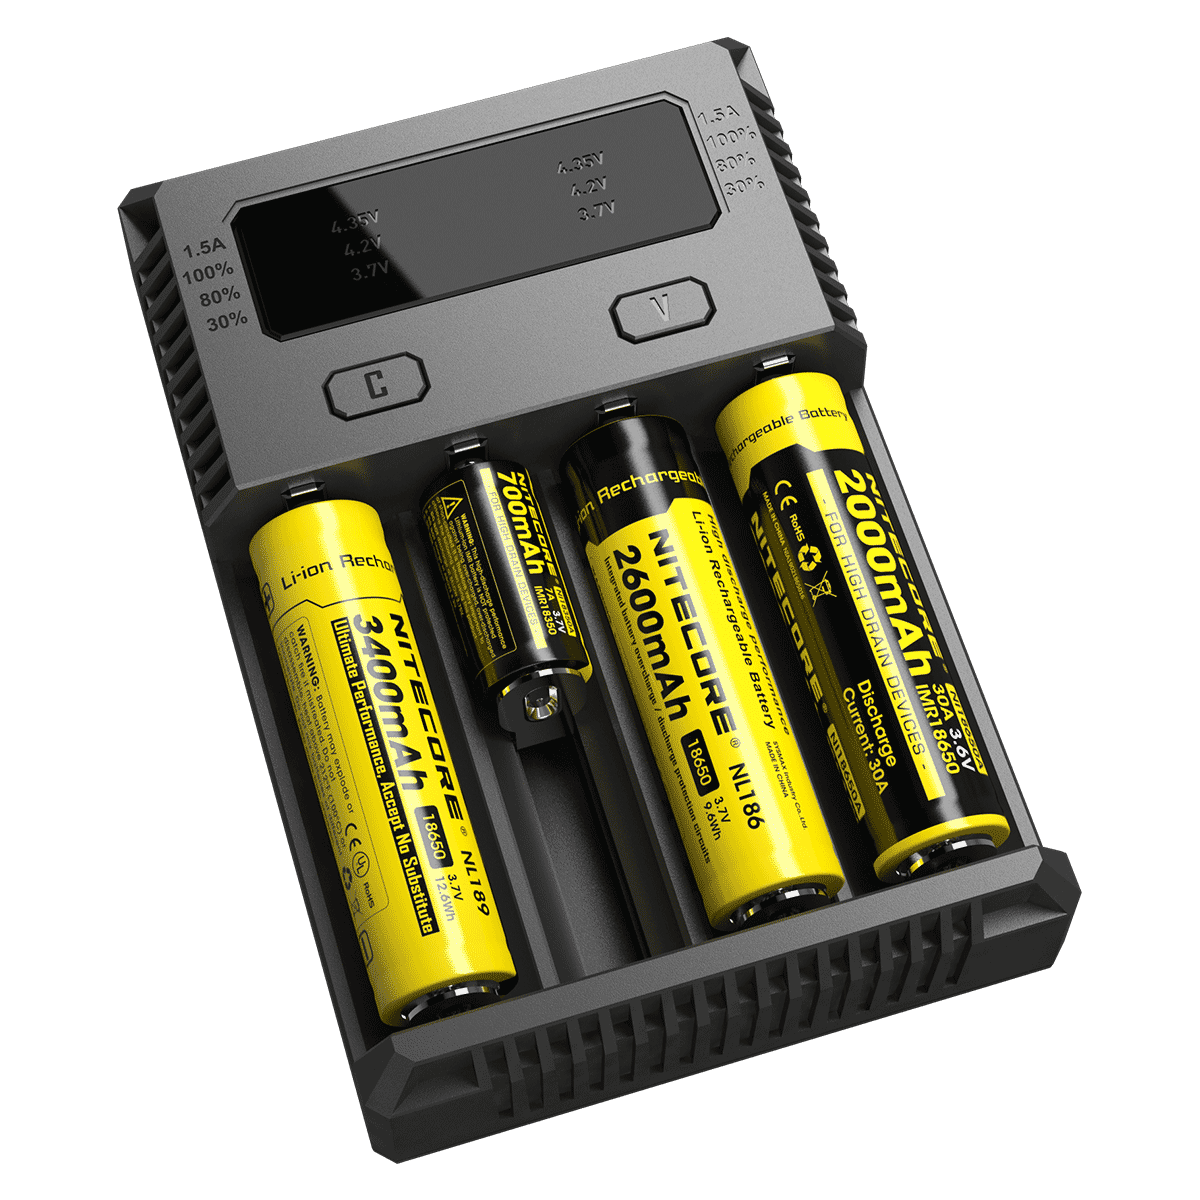 New Nitecore i4 intellicharger Battery Charger